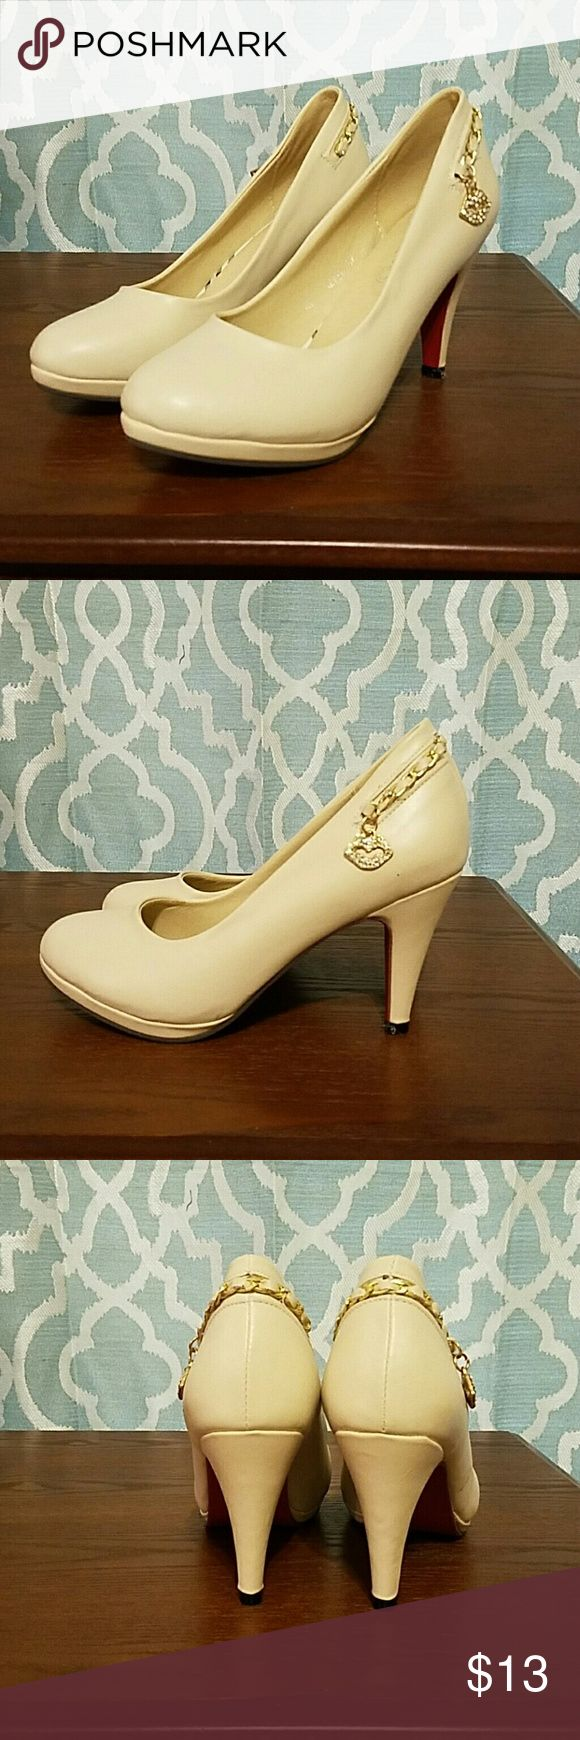 PRICE JUST REDUCED!!! BRAND NEW!!! Sassy cream shoes; run small-more like 8.5 than 9 Shoes Heels